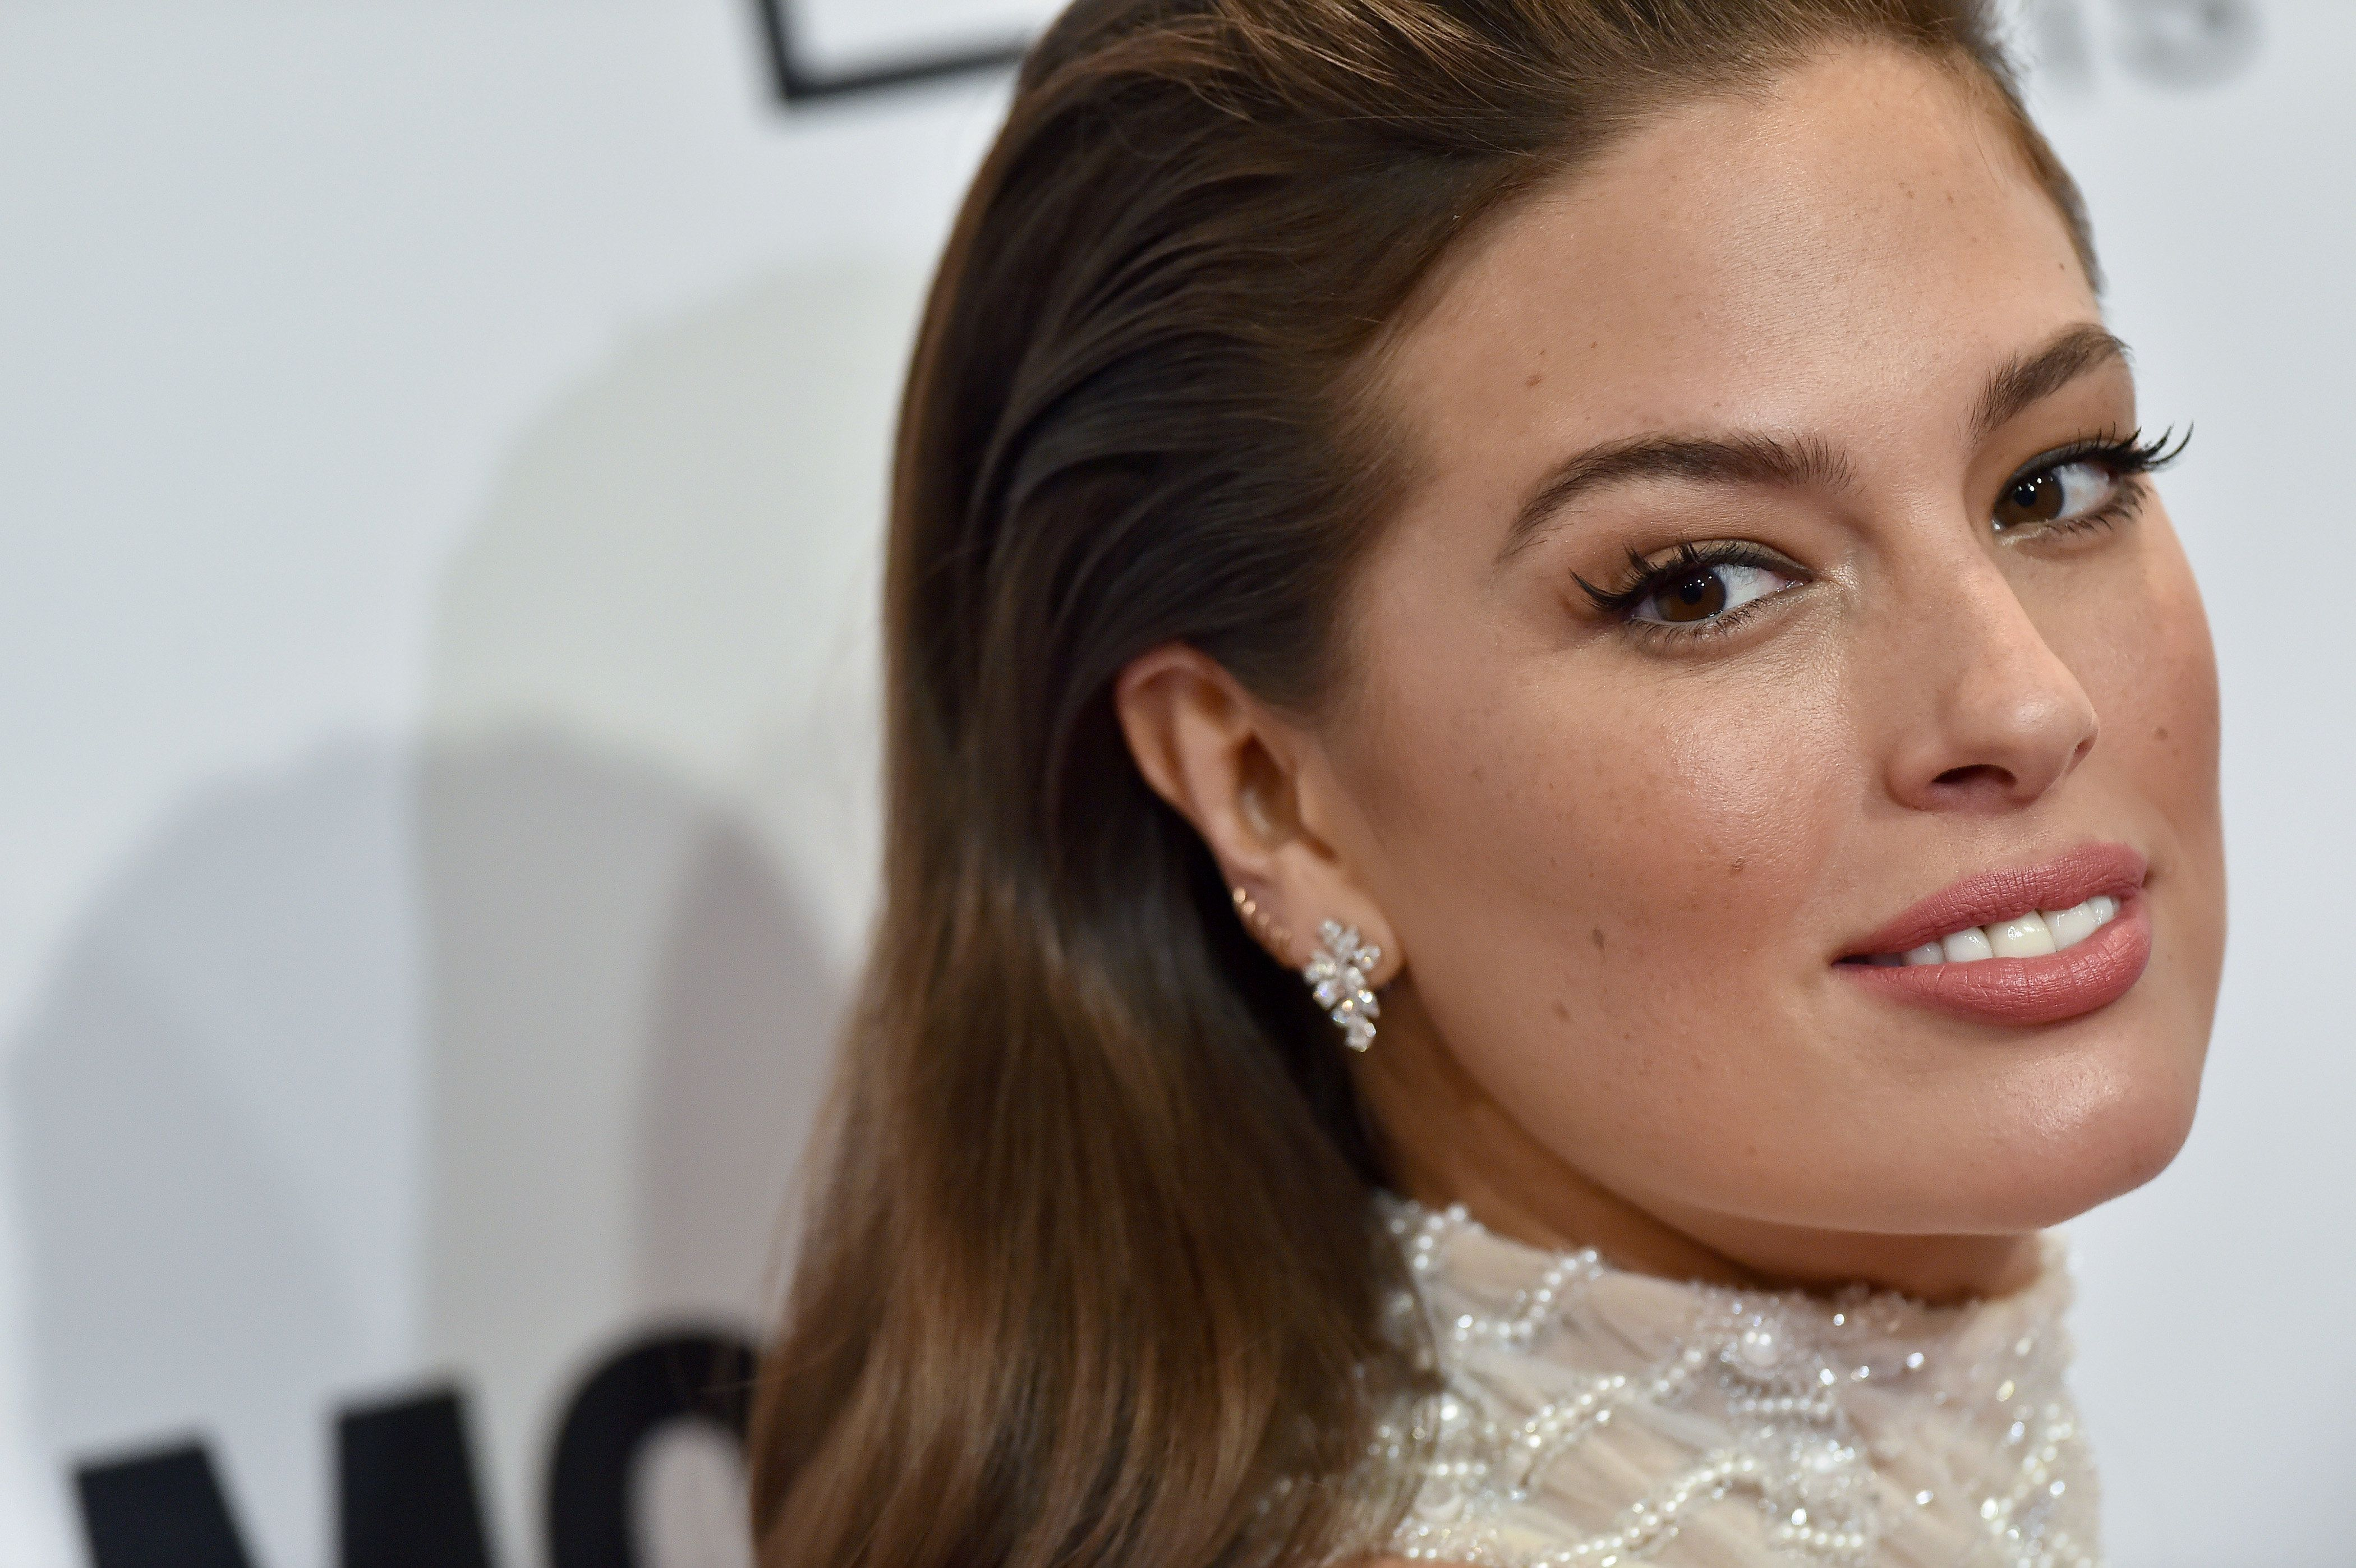 Ashley Graham Reminds Us Cellulite Is Nothing To Be Ashamed Of With Unapologetic Image Of Her